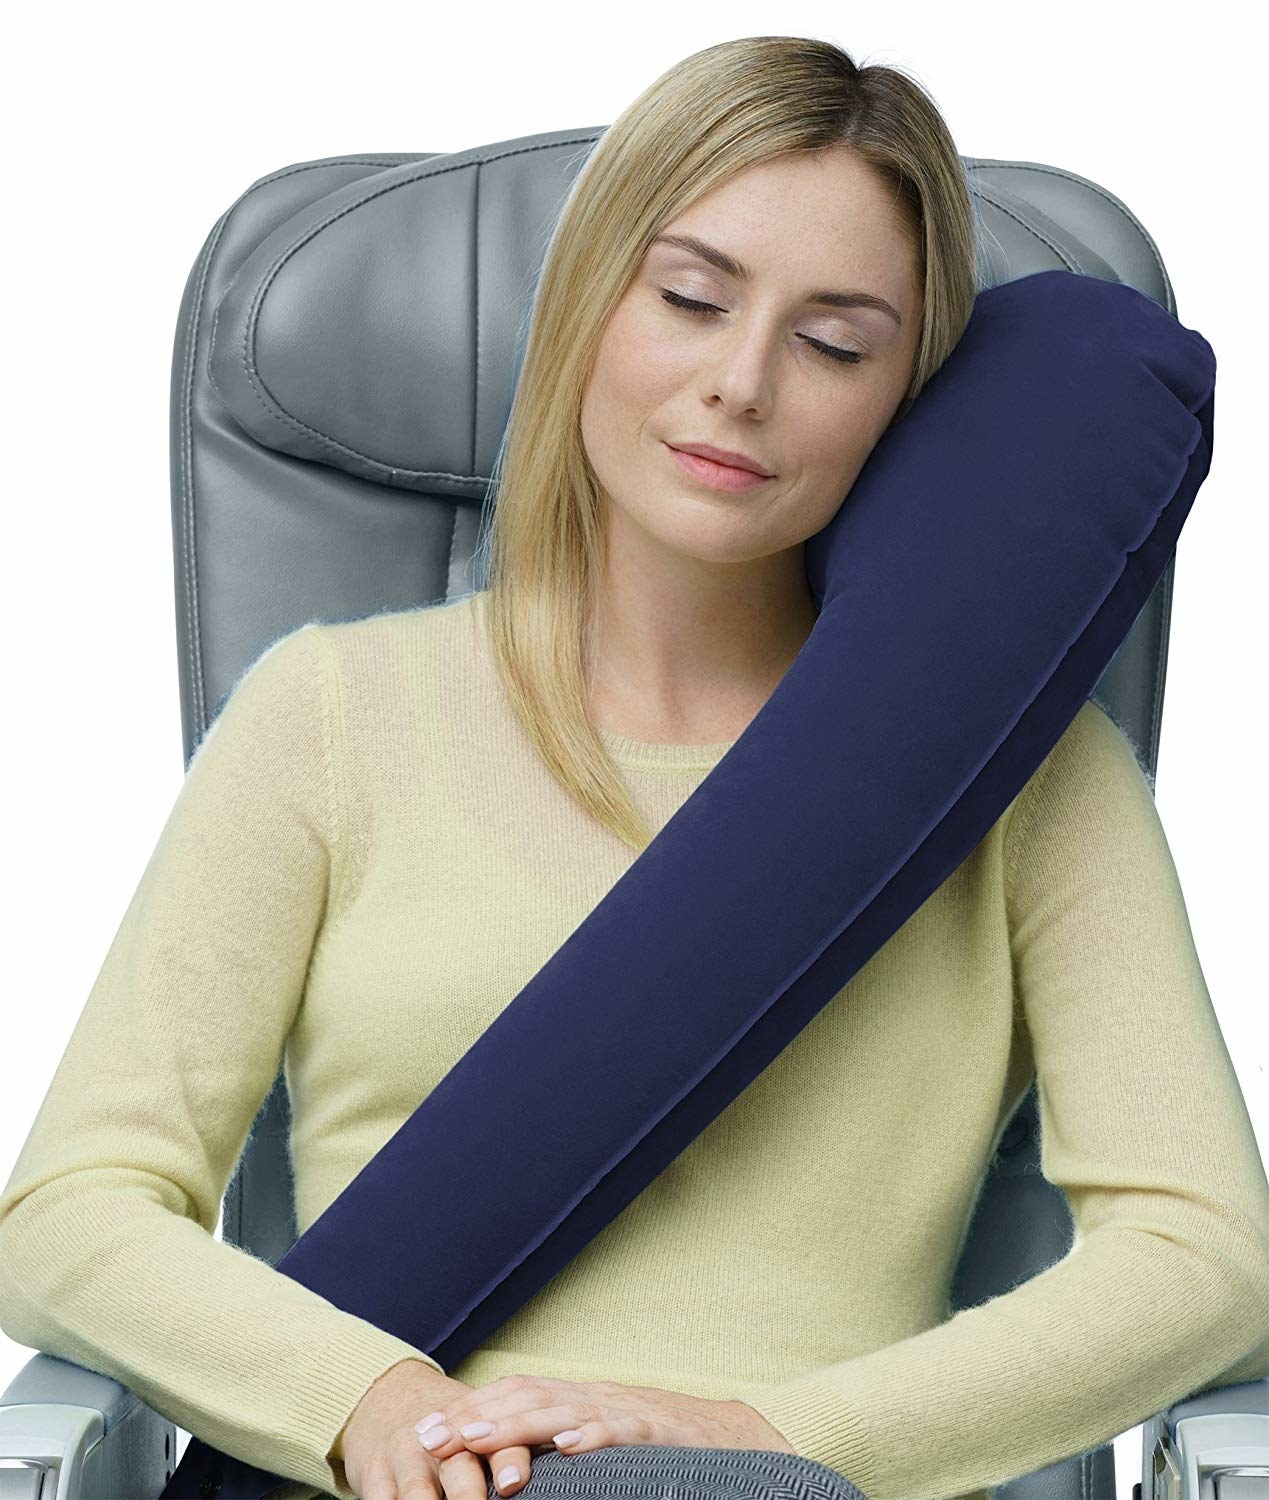 u-shaped pillow that is worn crossbody to offer neck support